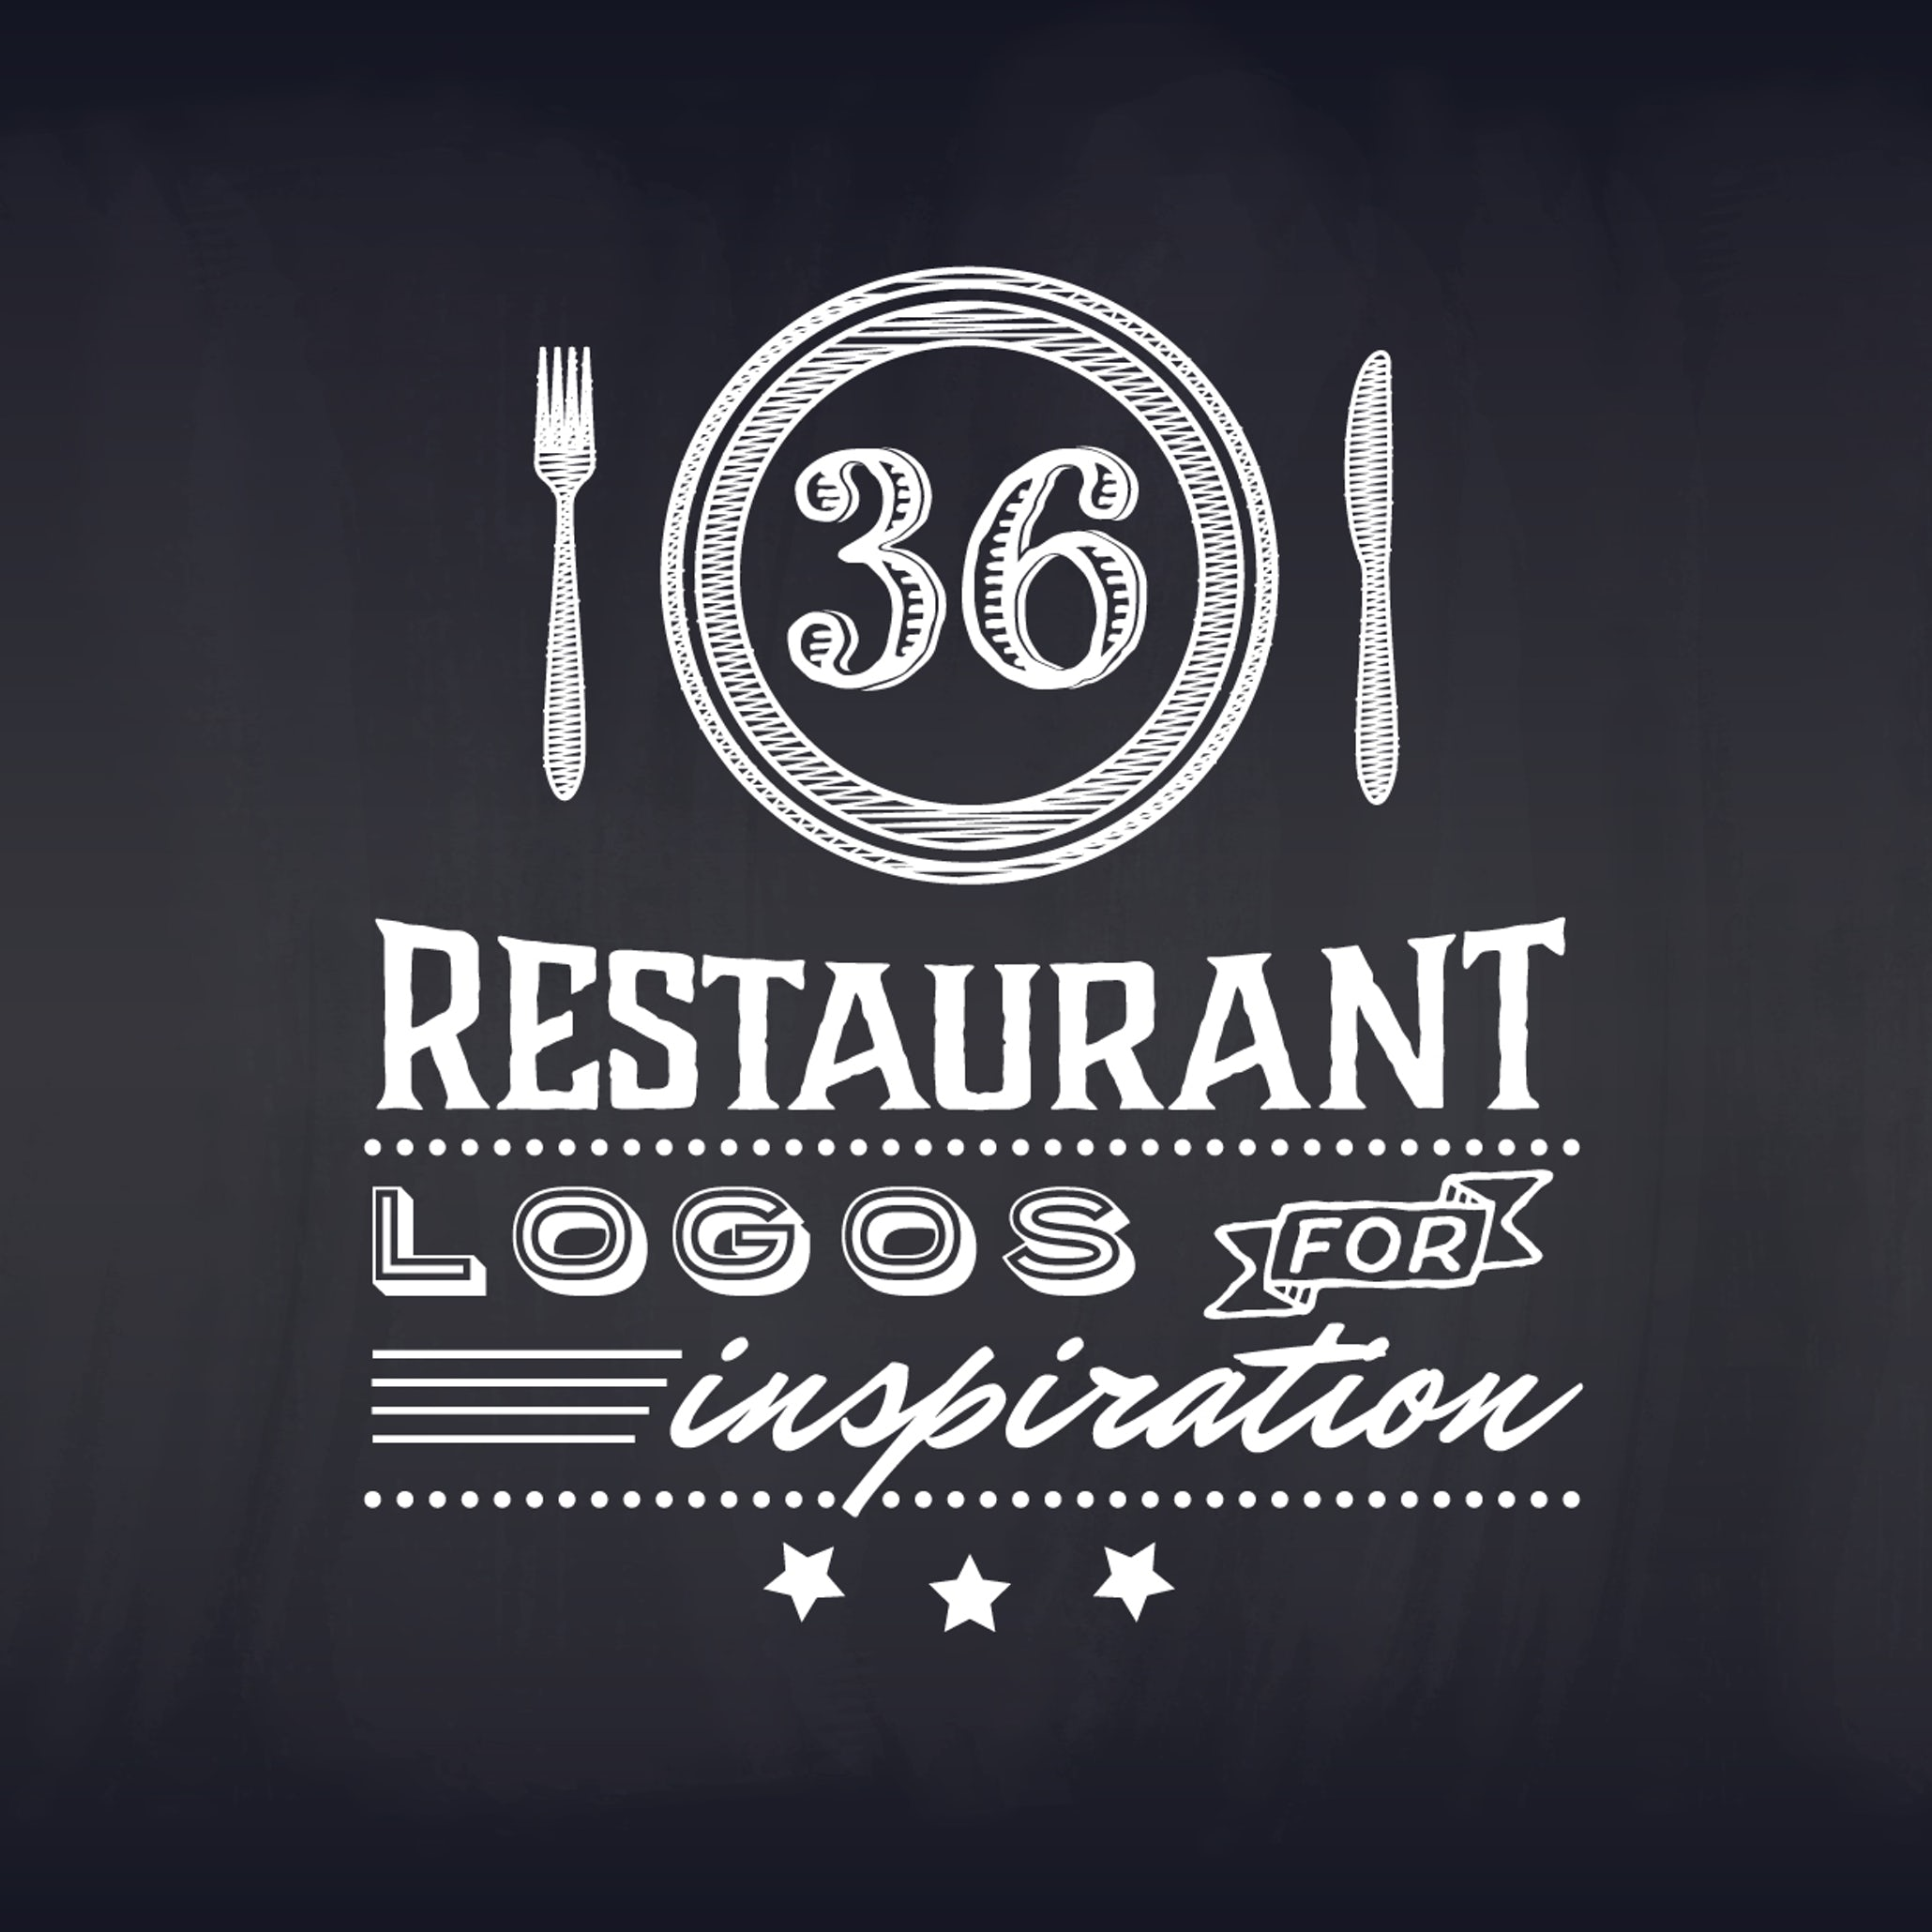 36 of the best restaurant logos for inspiration - 99designs